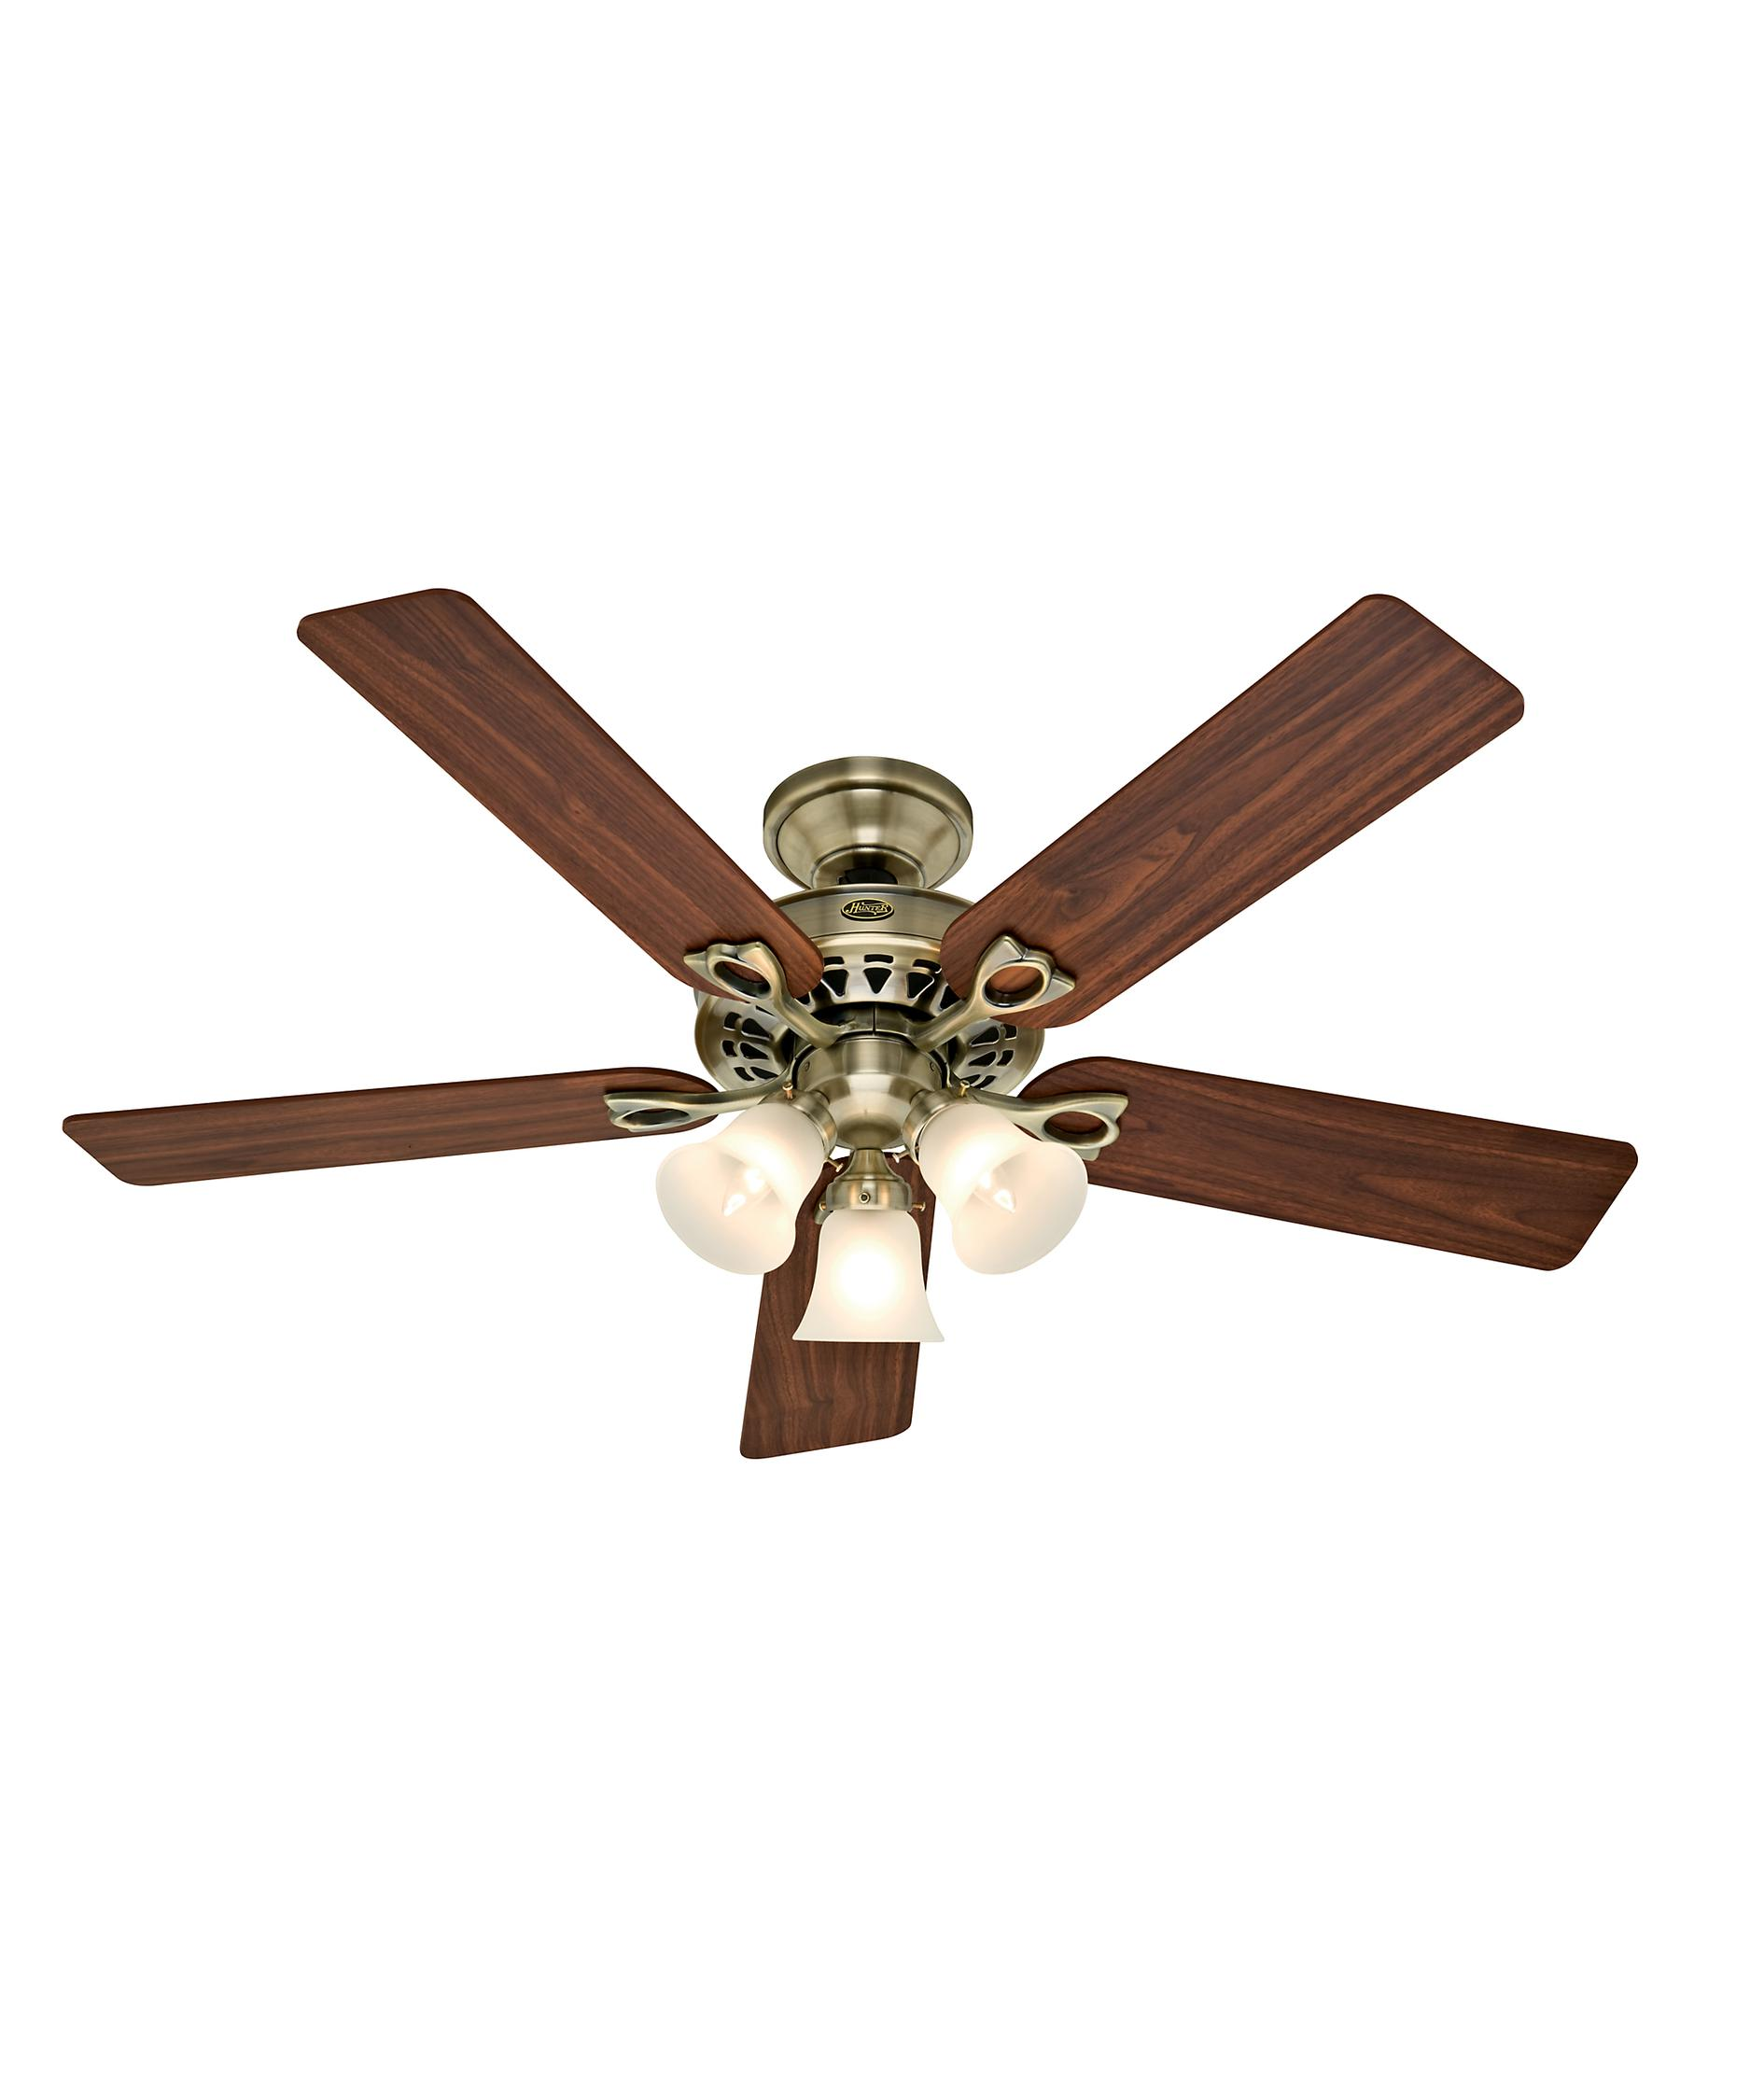 Murray Feiss Ceiling Fan Light Kit: Hunter Fan 21433 Sontera 52 Inch Ceiling Fan With Light